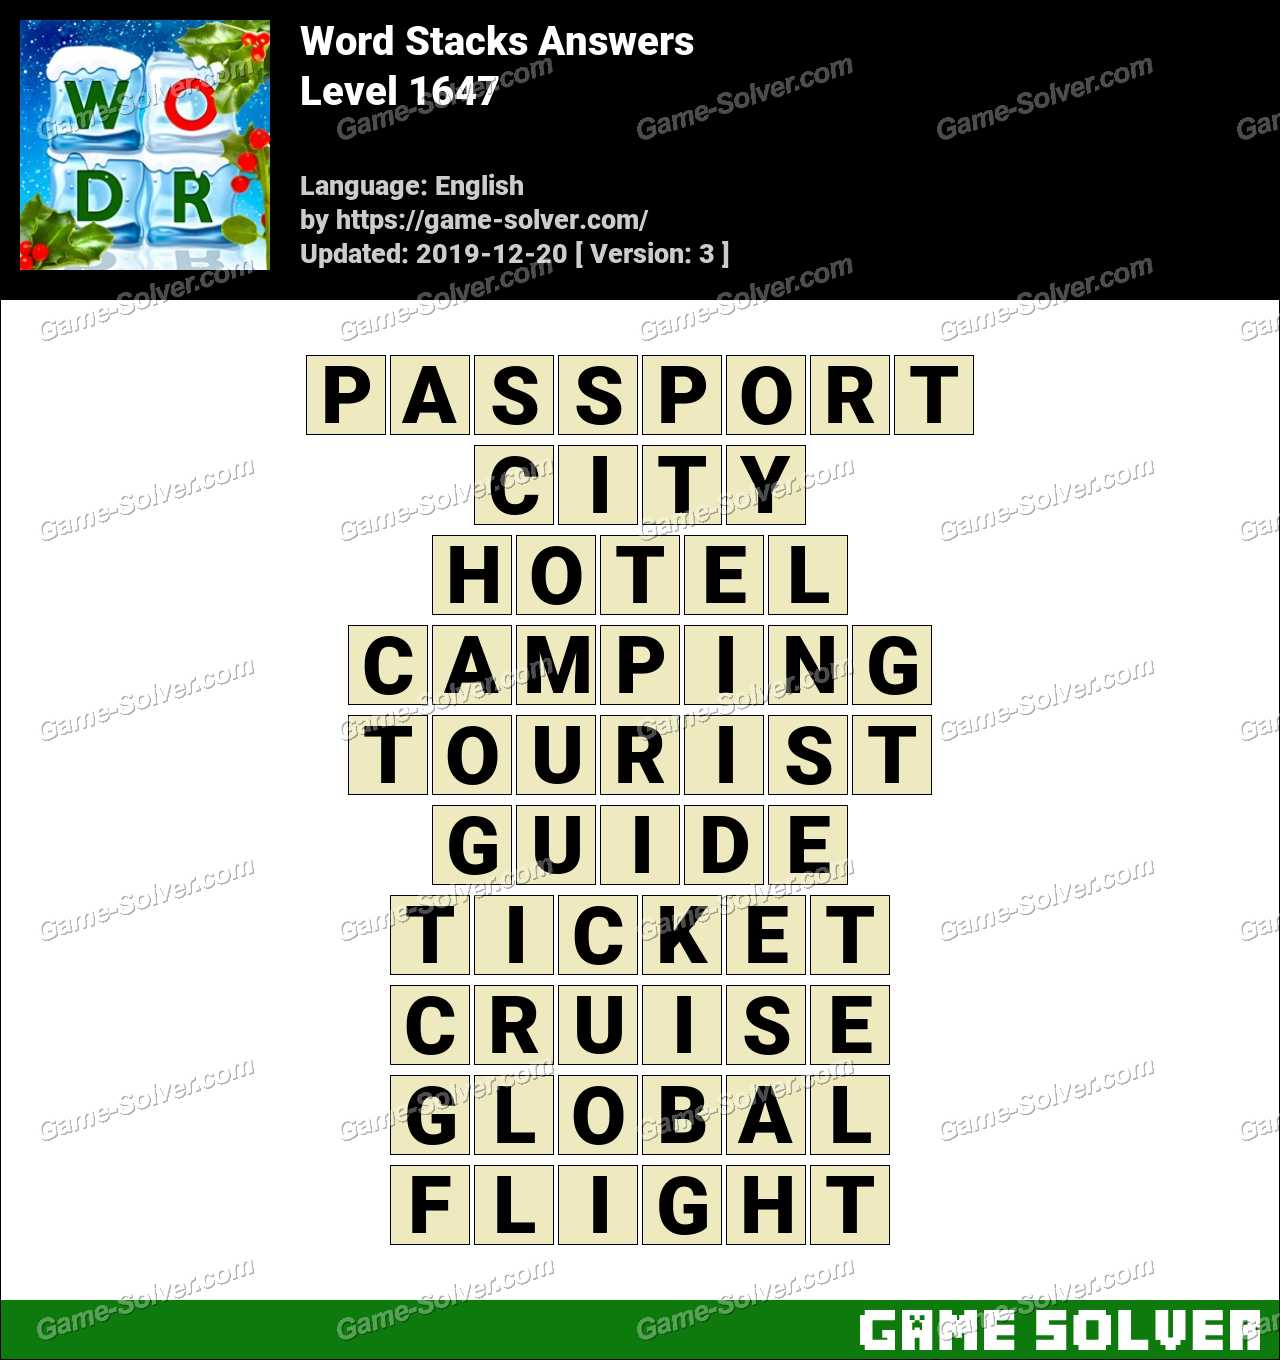 Word Stacks Level 1647 Answers